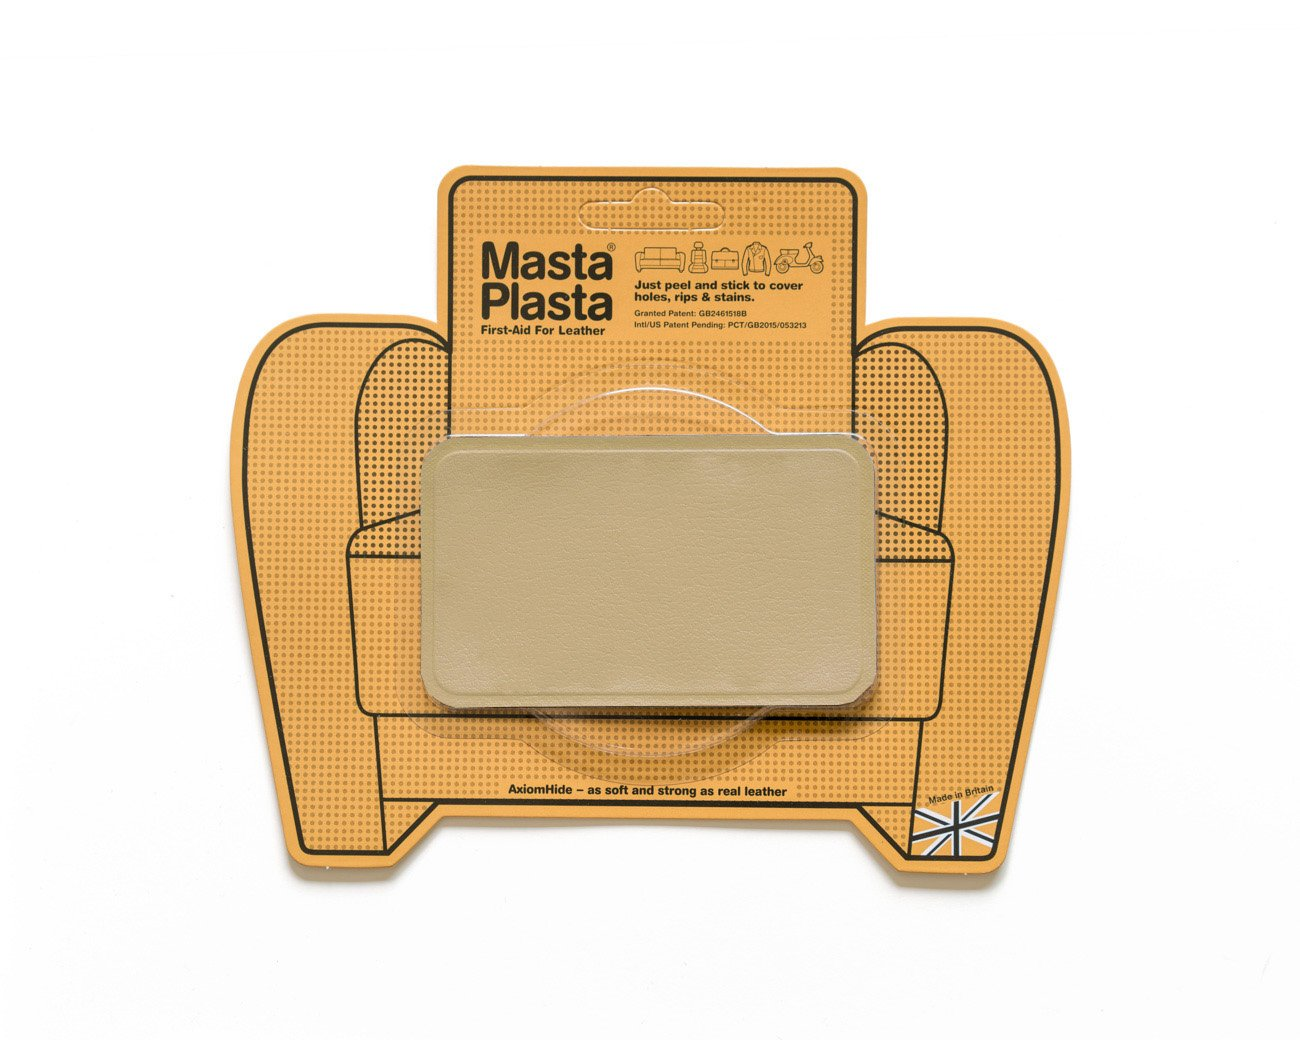 Beige MastaPlasta Self-Adhesive Leather Repair Patches. Choose size/design. First-aid for sofas, car seats, handbags, jackets etc. (BEIGE SUPER-PLAIN 10cmx6cm) MastaPlasta Ltd